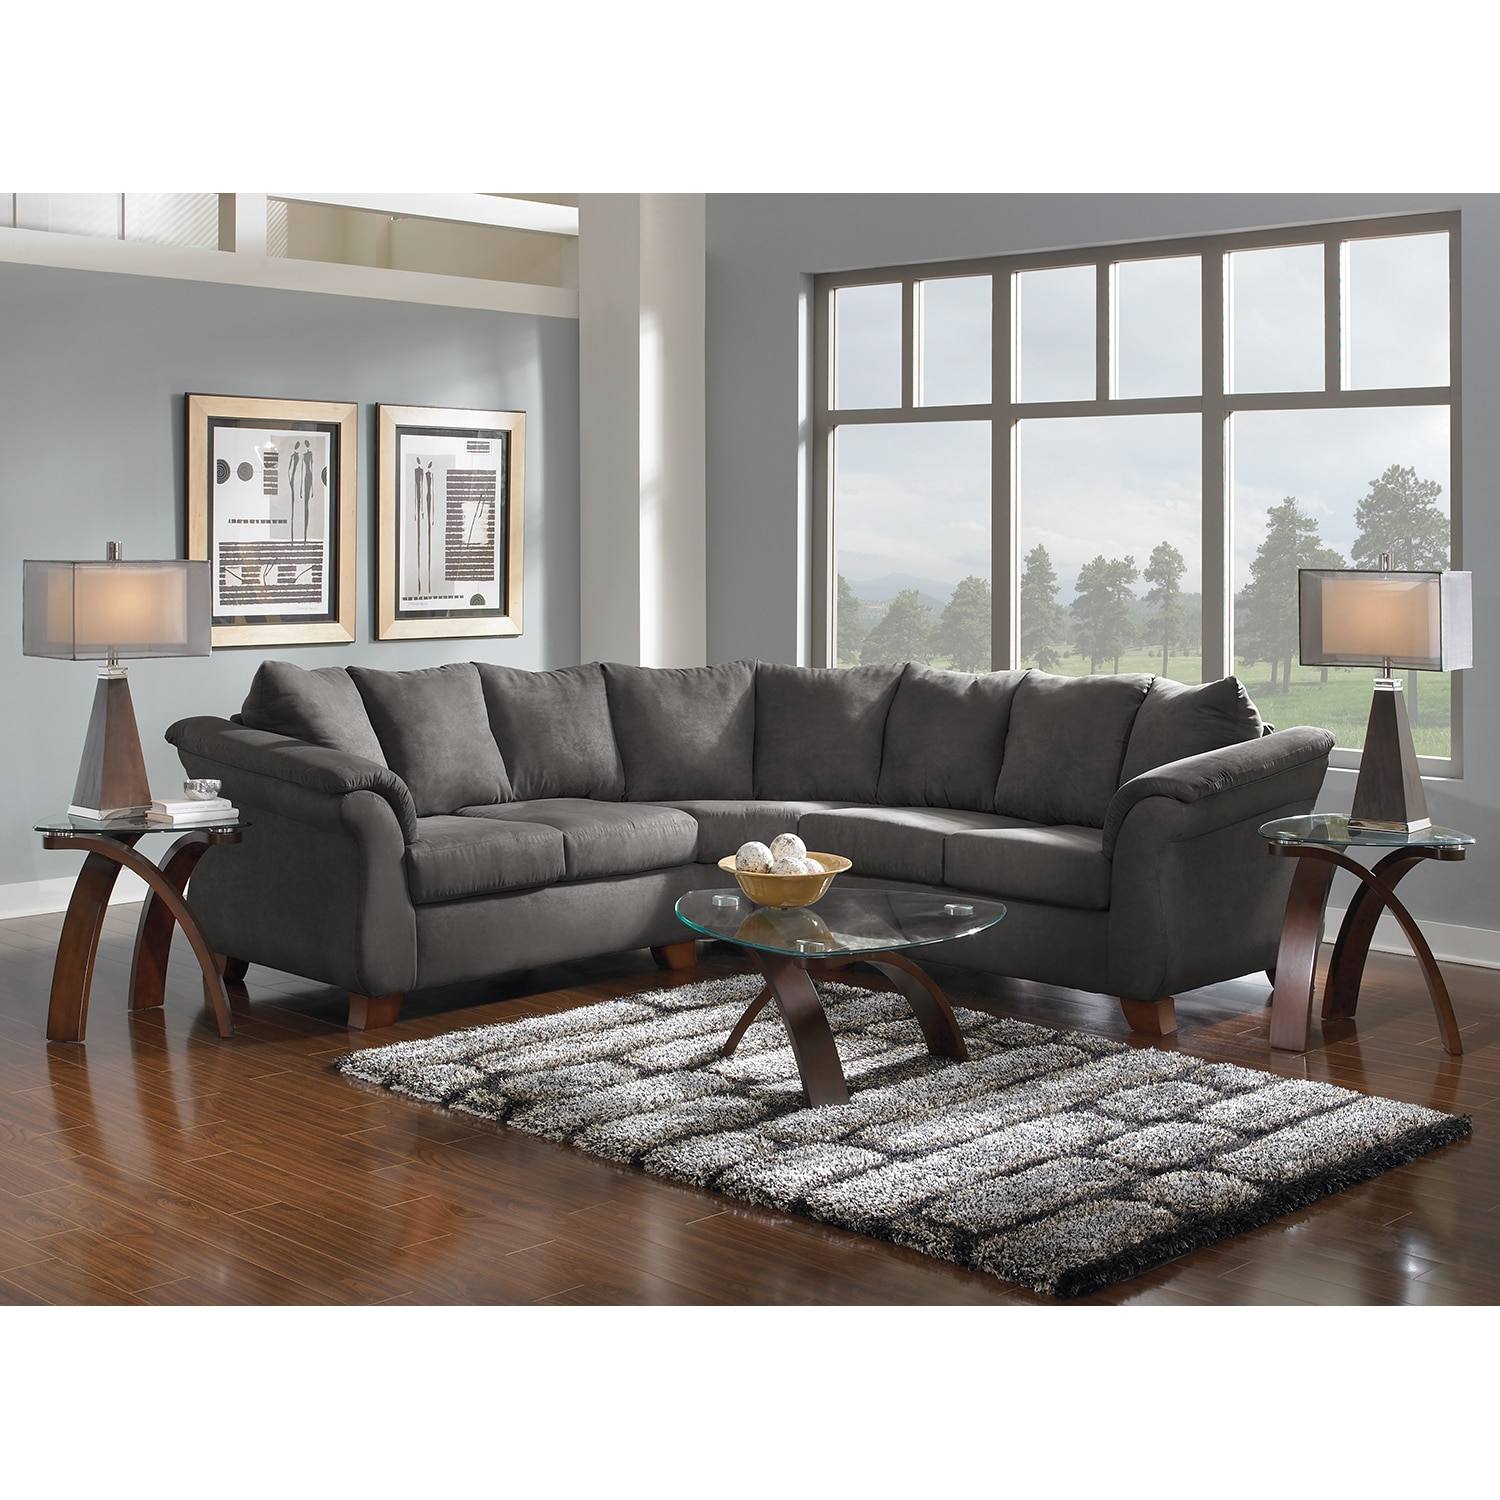 Value City Furniture Clearance Center: Adrian Graphite II 2 Pc. Sectional